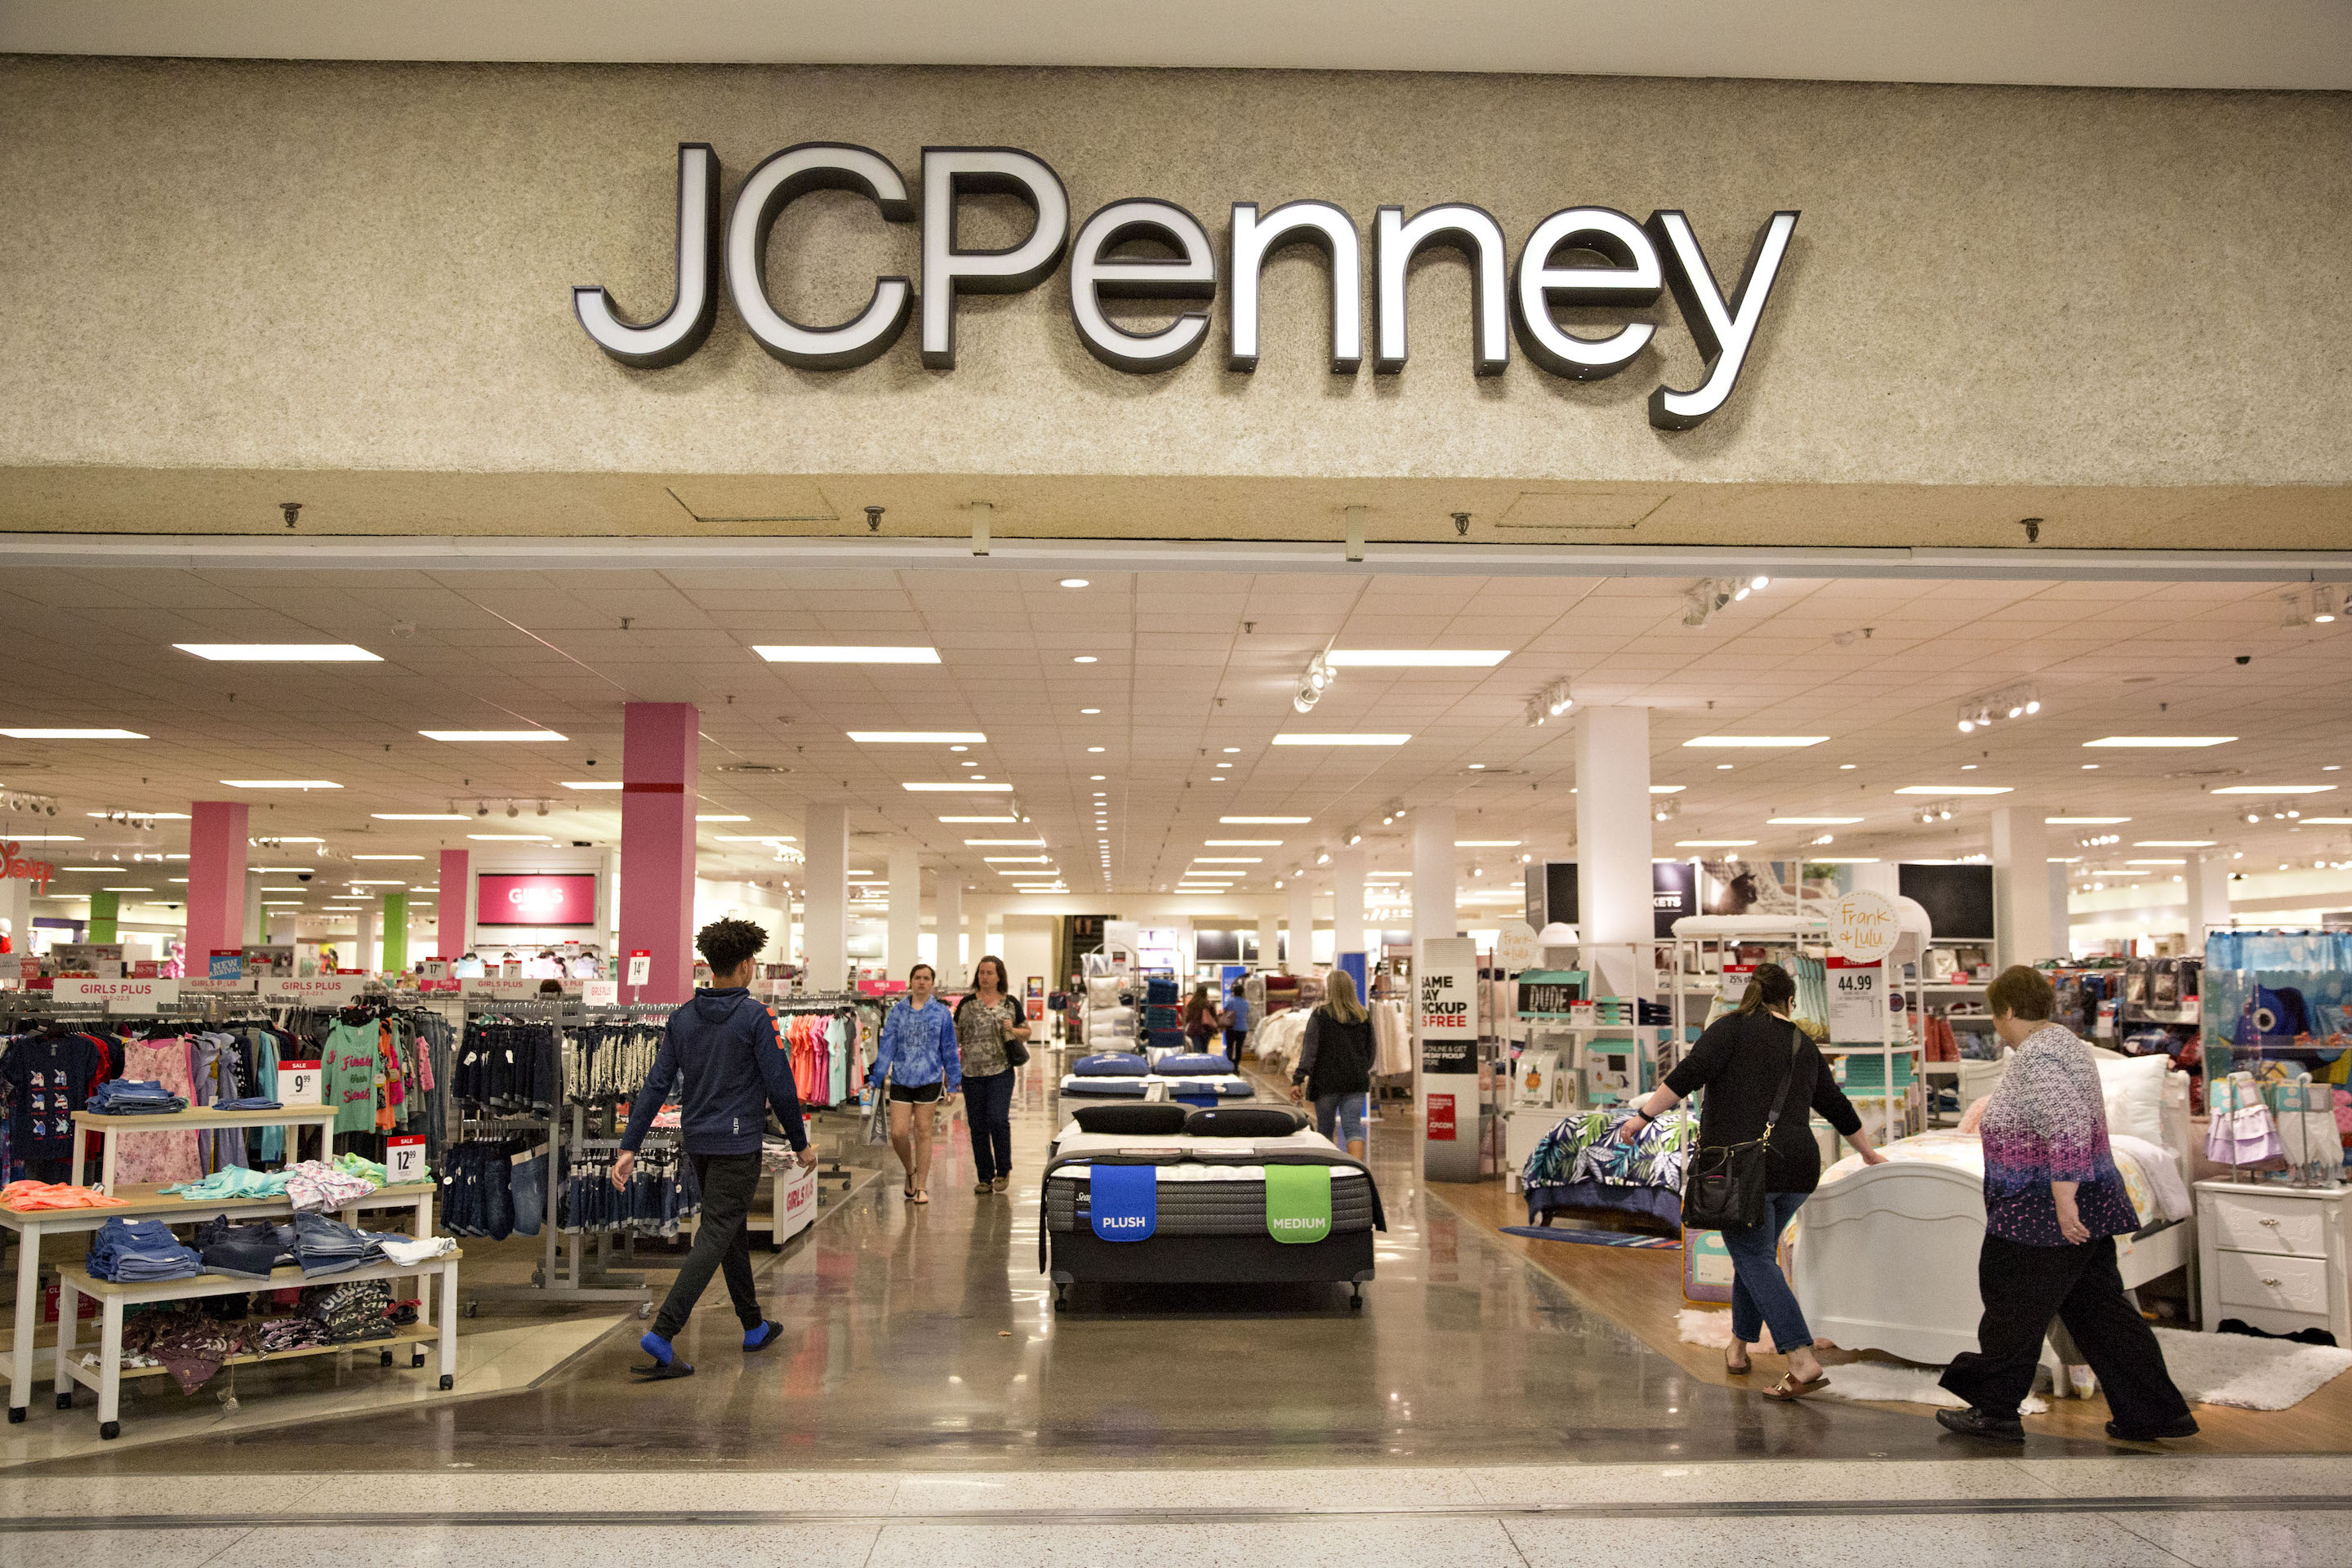 Beleaguered J.C. Penney has hired advisors on debt restructuring.